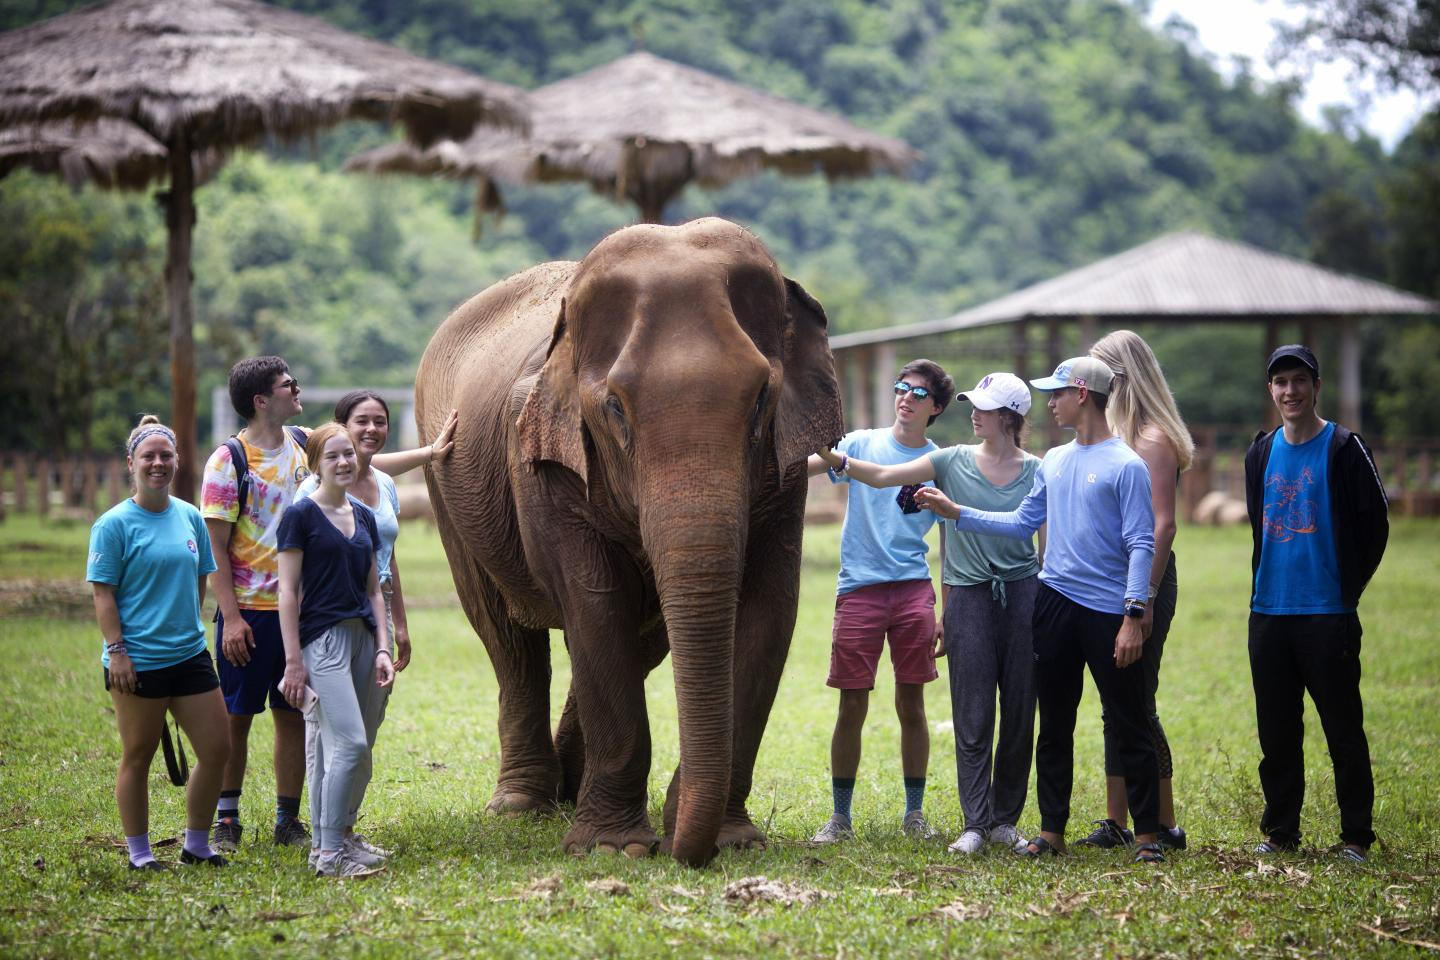 Youth travelers helping communities during teen volunteer program in thailand